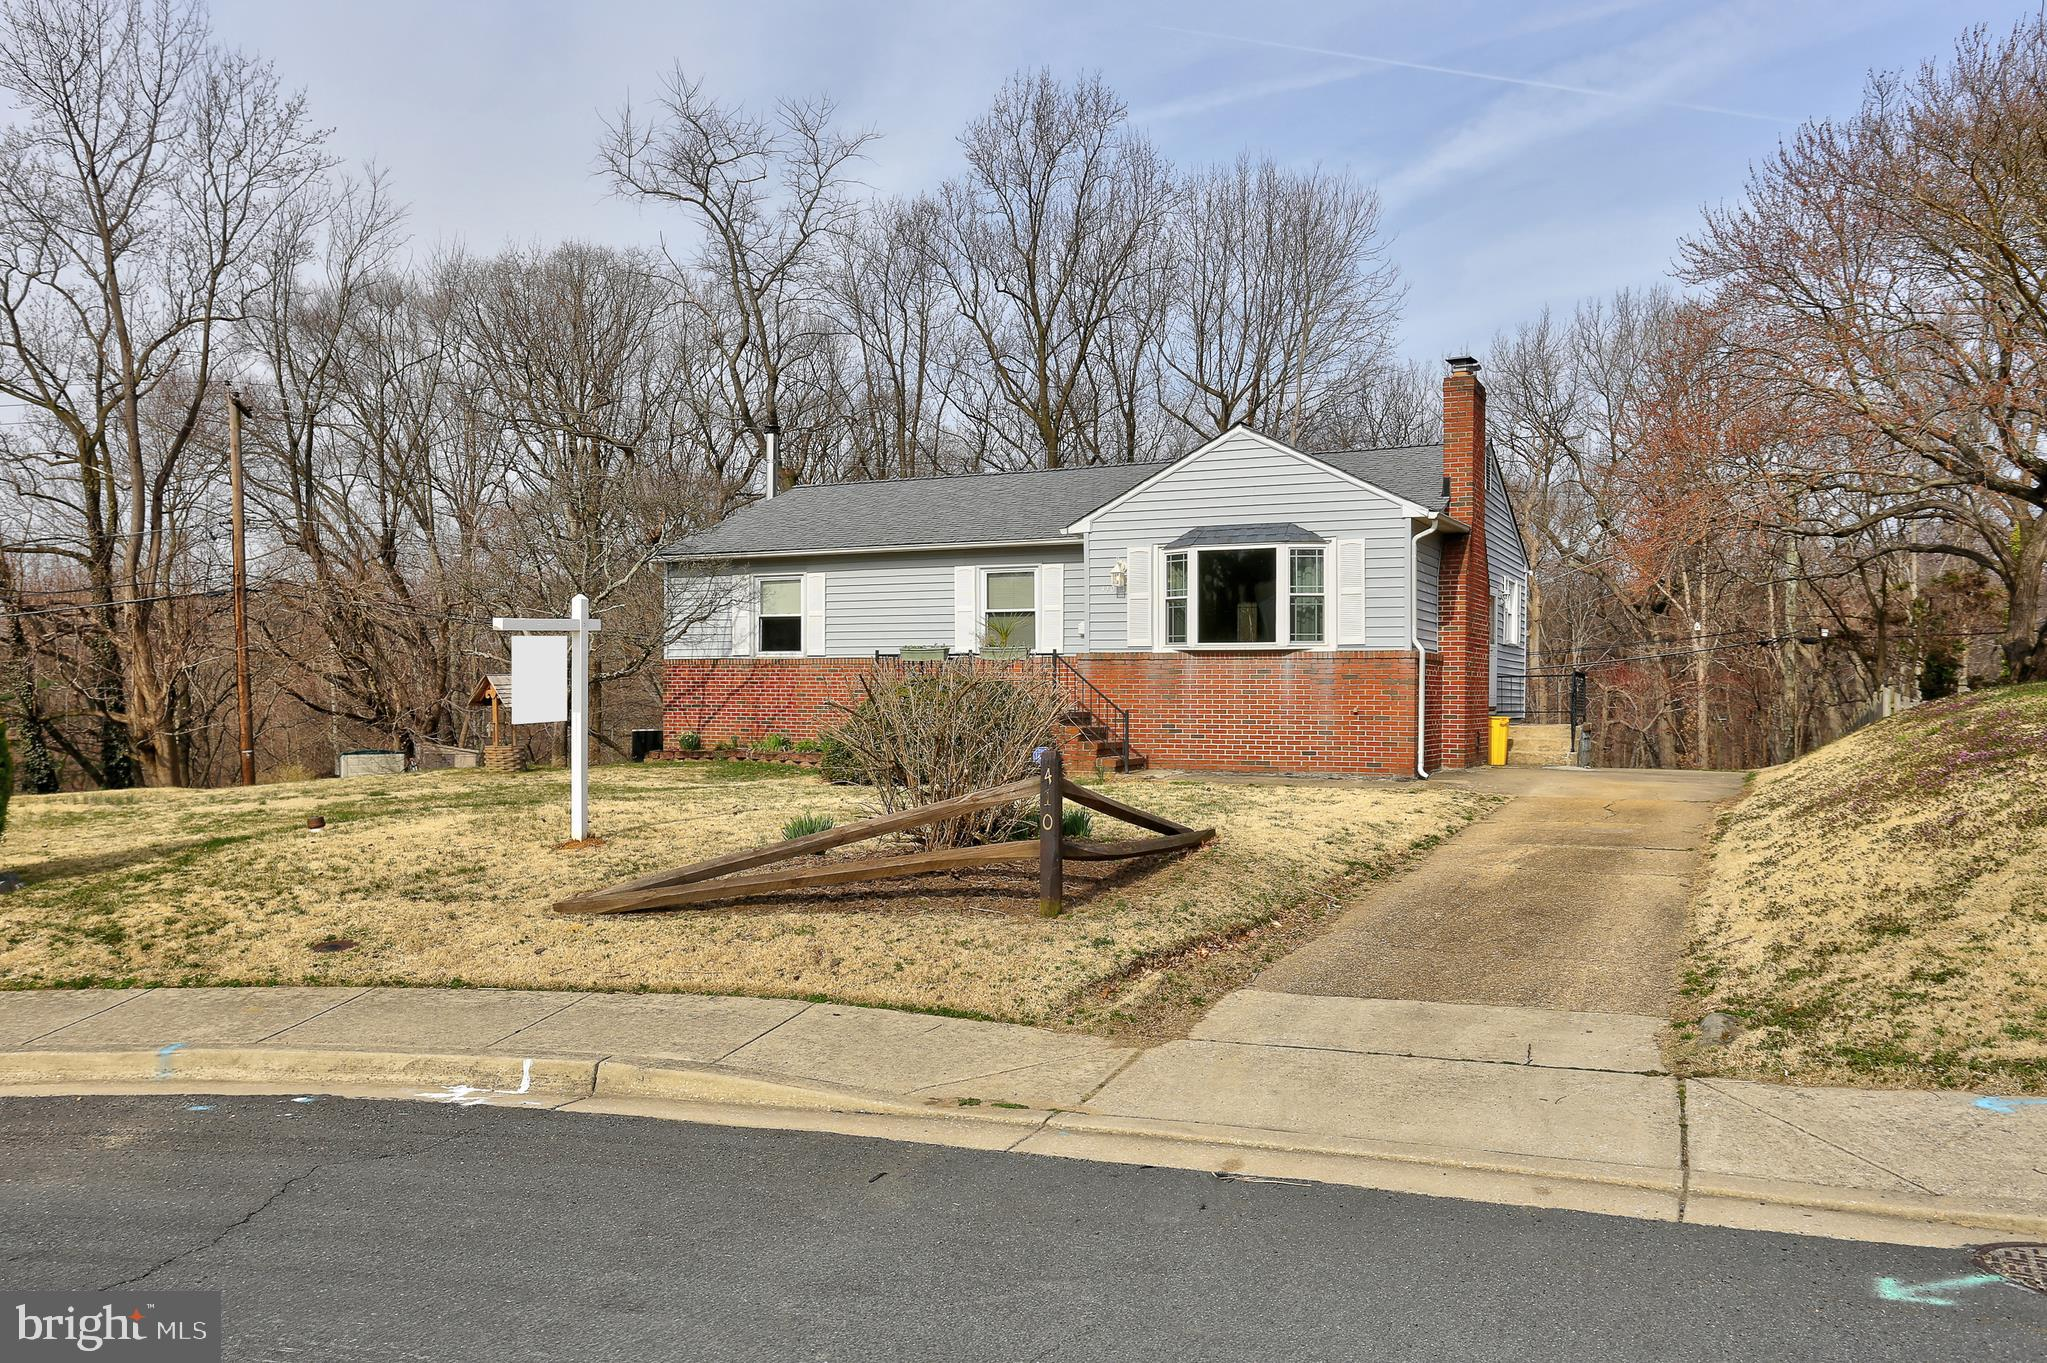 410 CATHERINE AVENUE, LINTHICUM, MD 21090